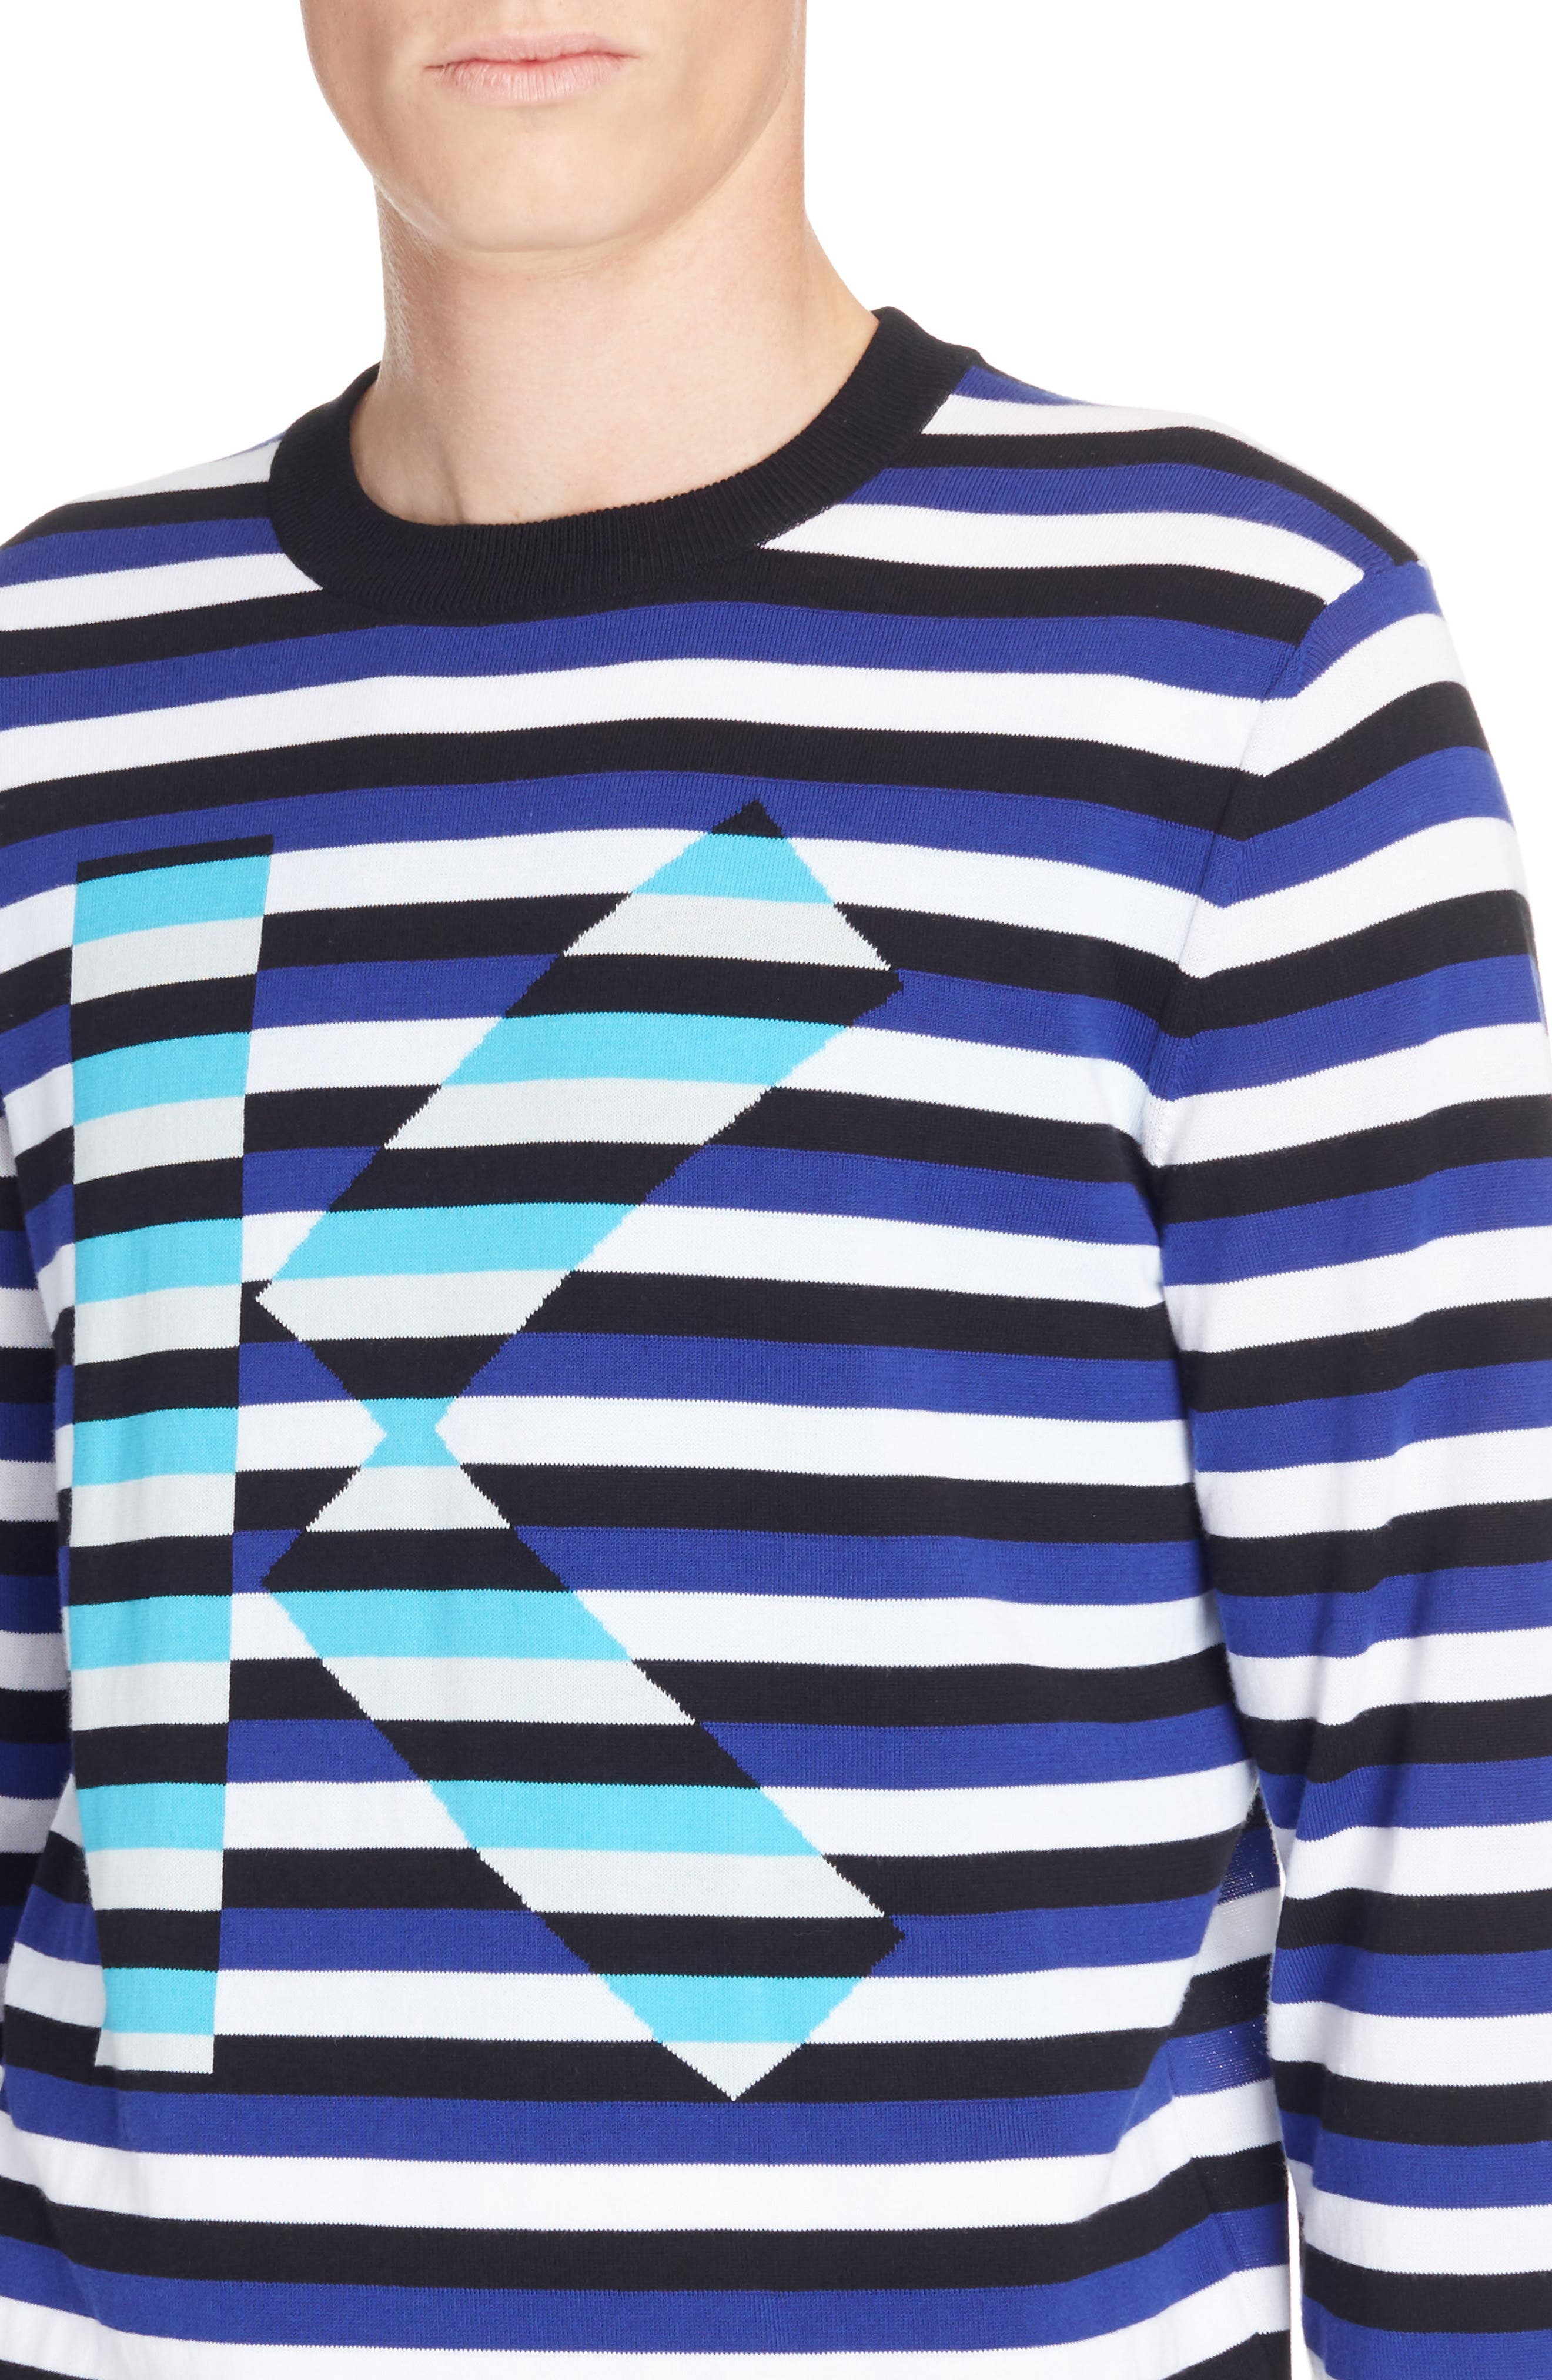 Large K Stripe Sweater,                             Alternate thumbnail 4, color,                             French Blue